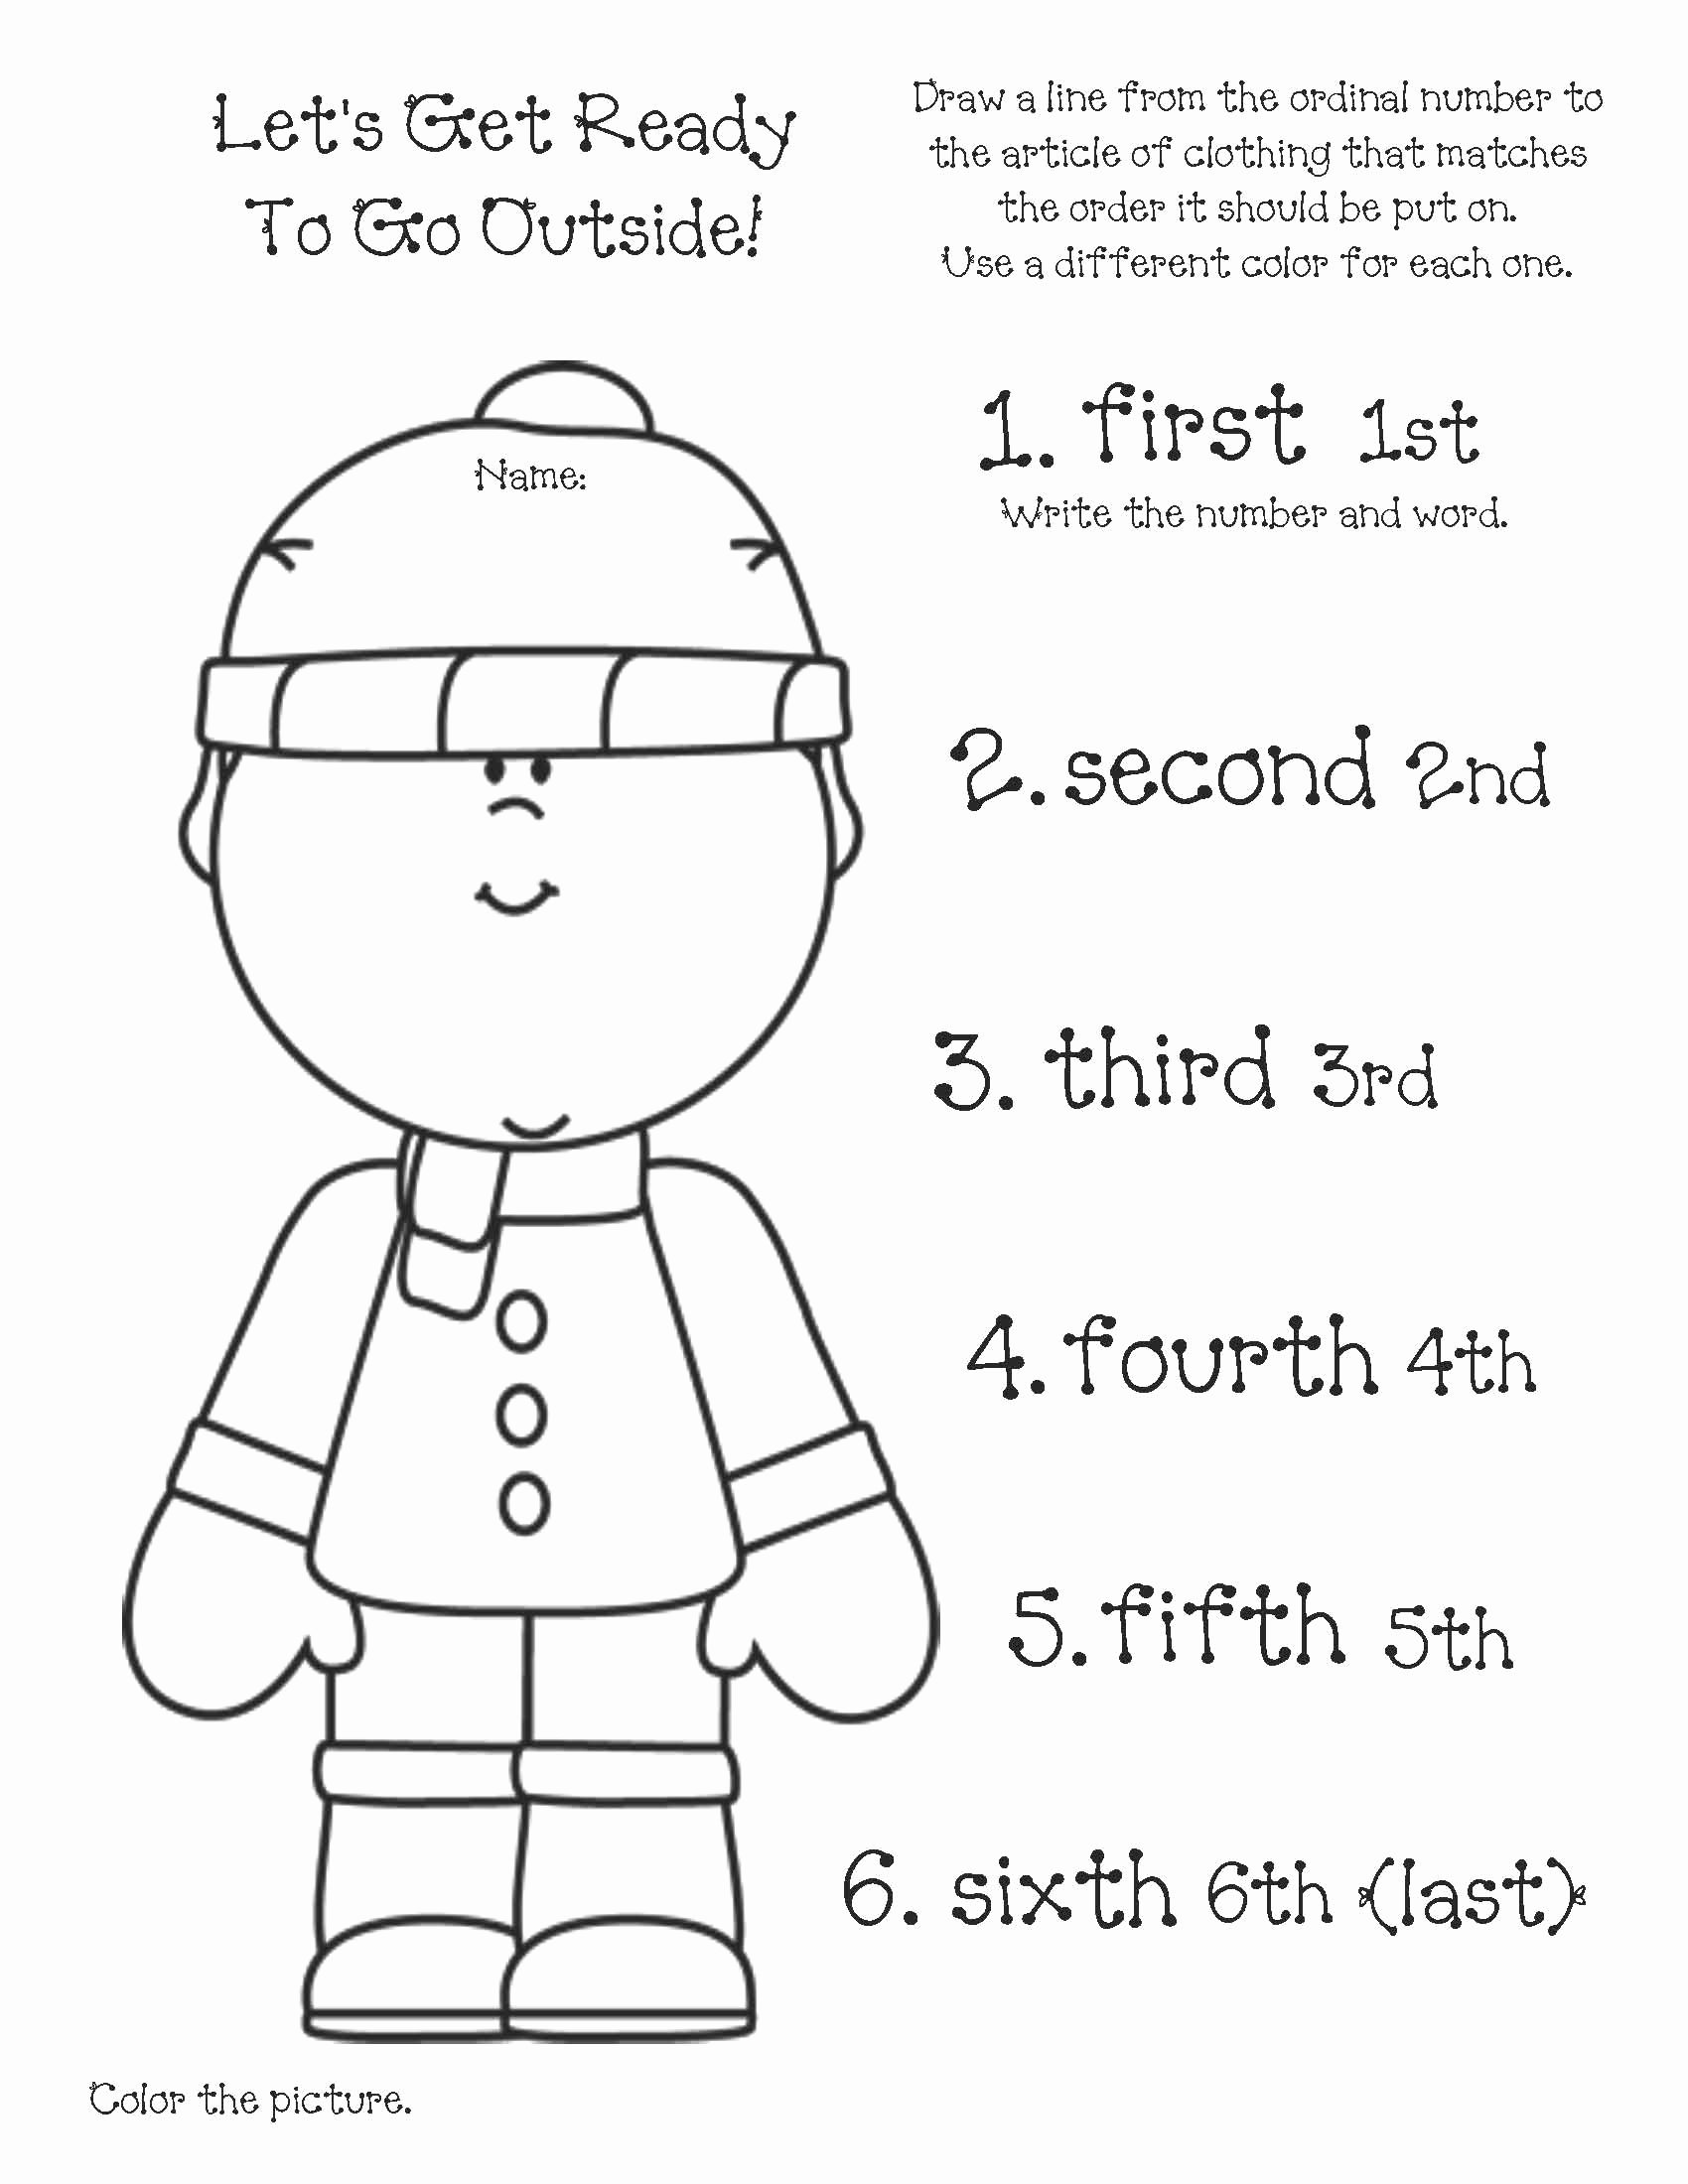 Winter Clothes Worksheets for Preschoolers top Ready Set Go